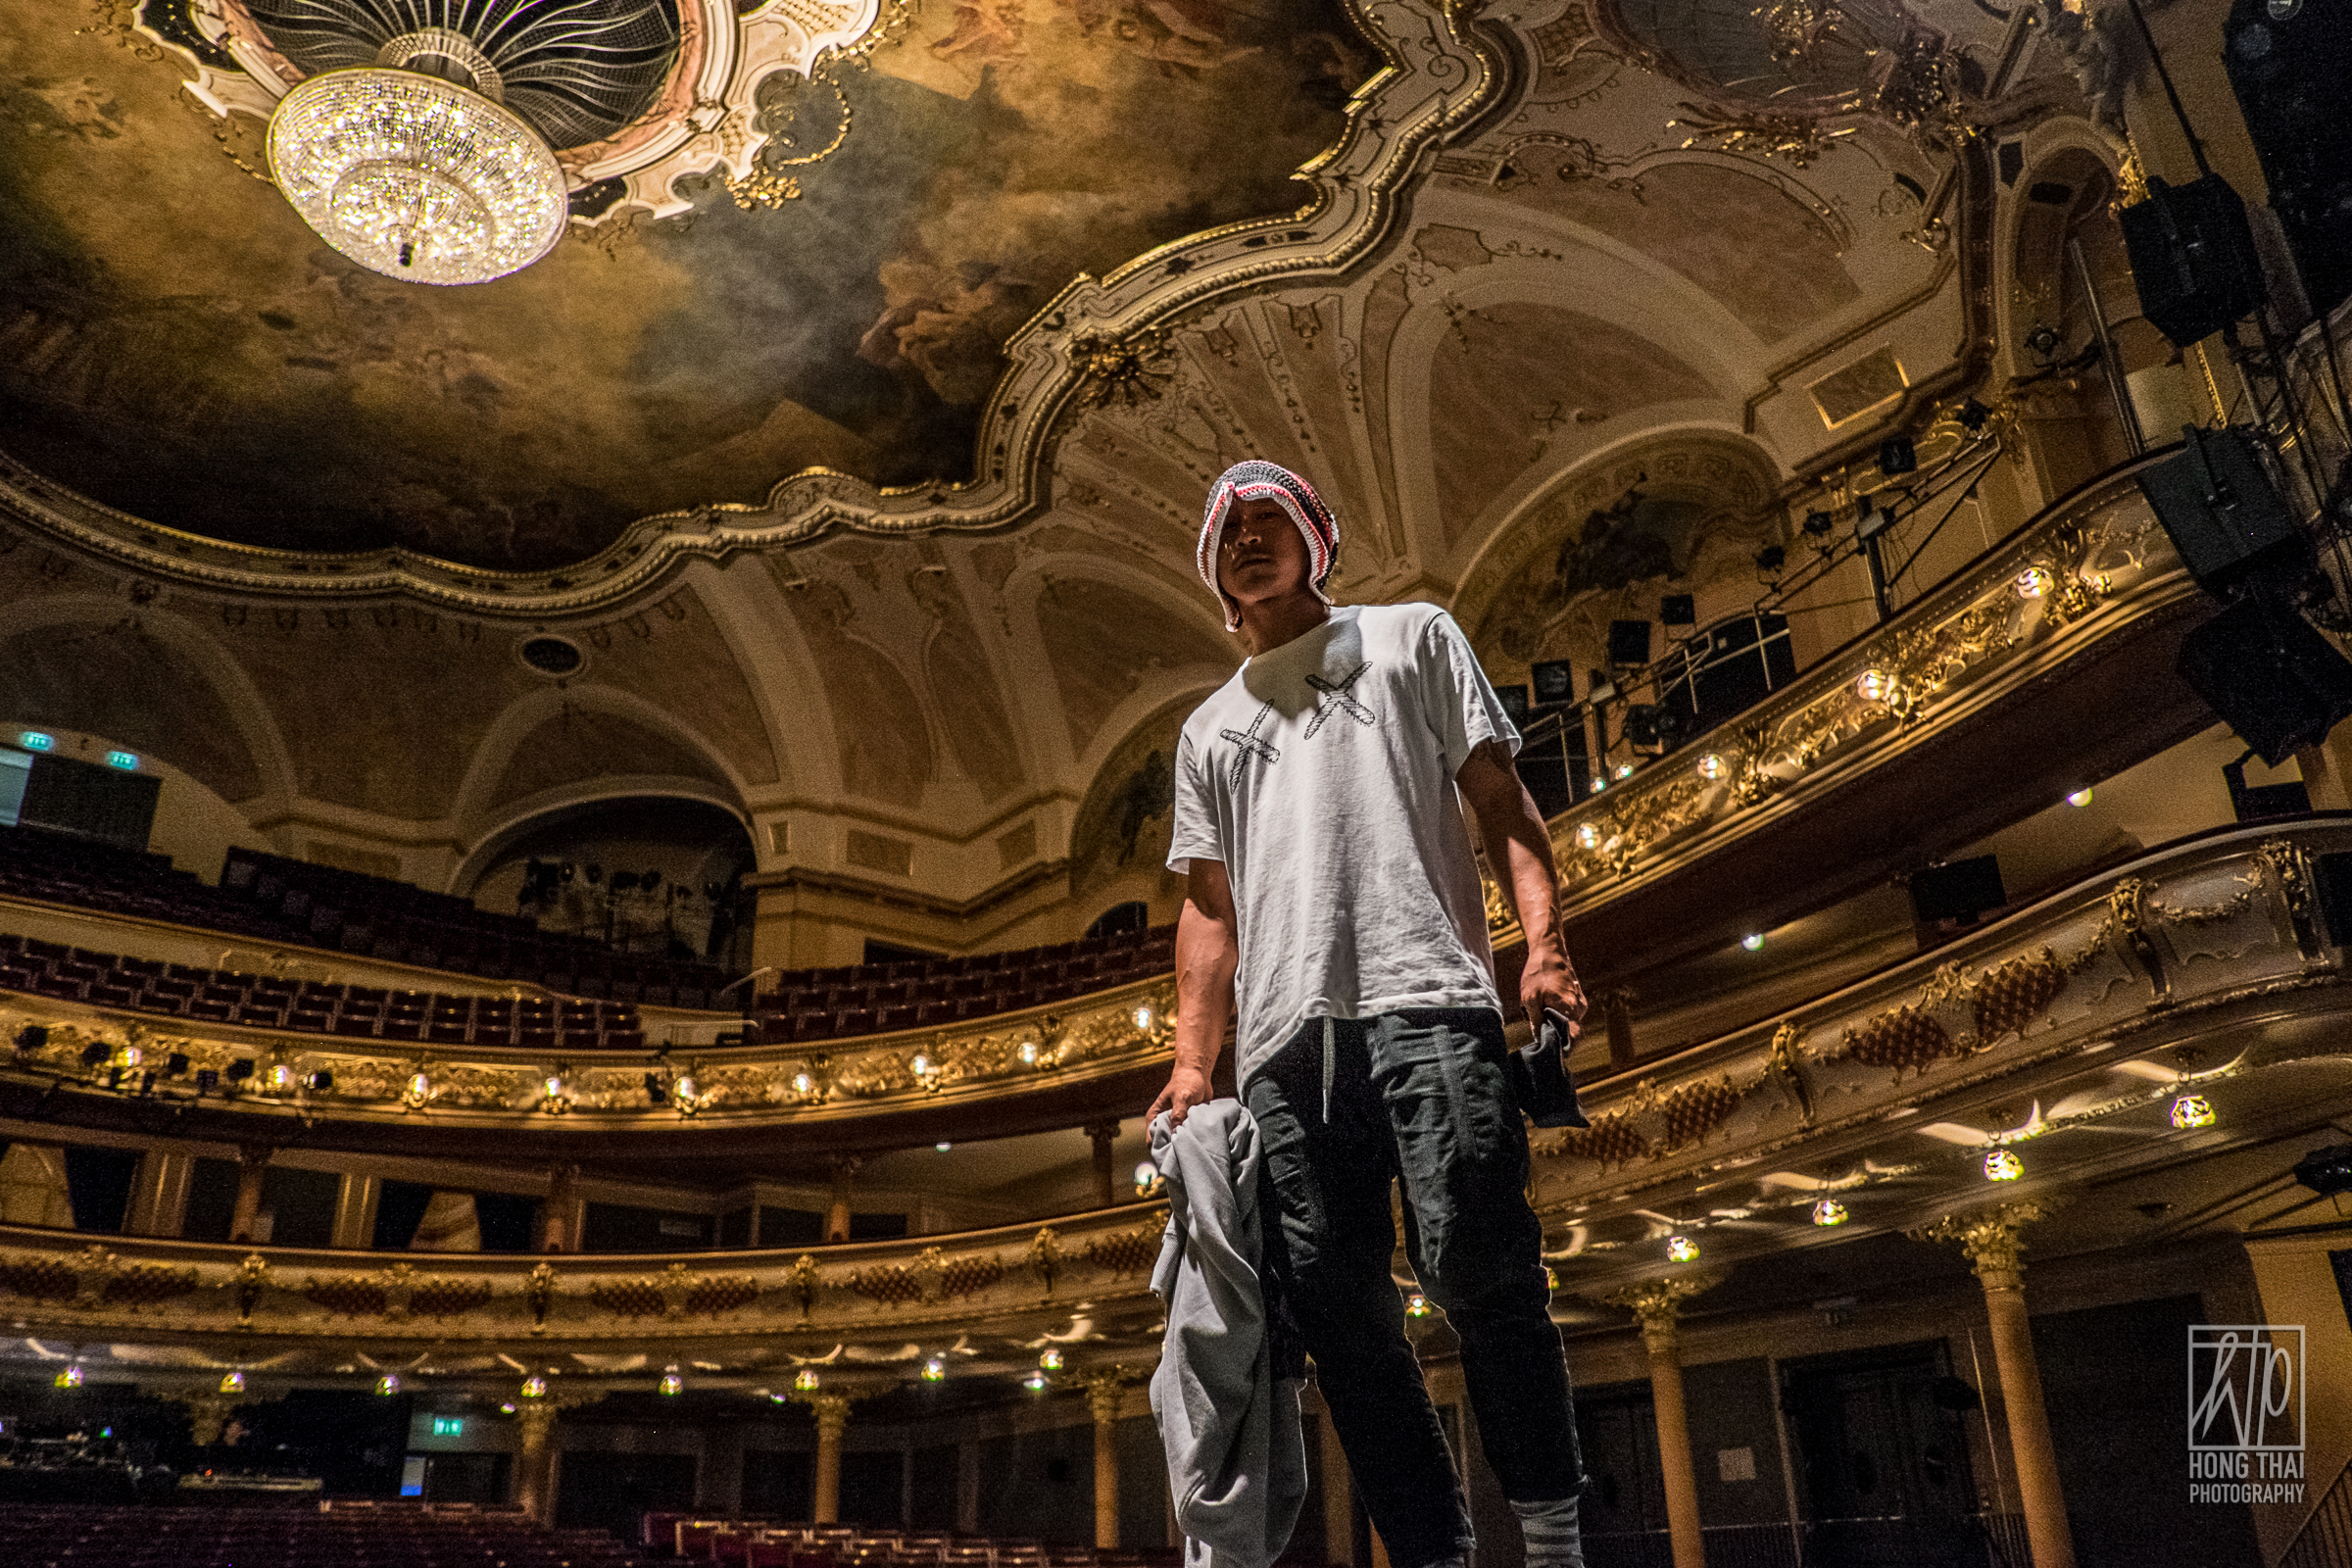 2016, Hip Hop Mask in the Karlin Theatre, Prague